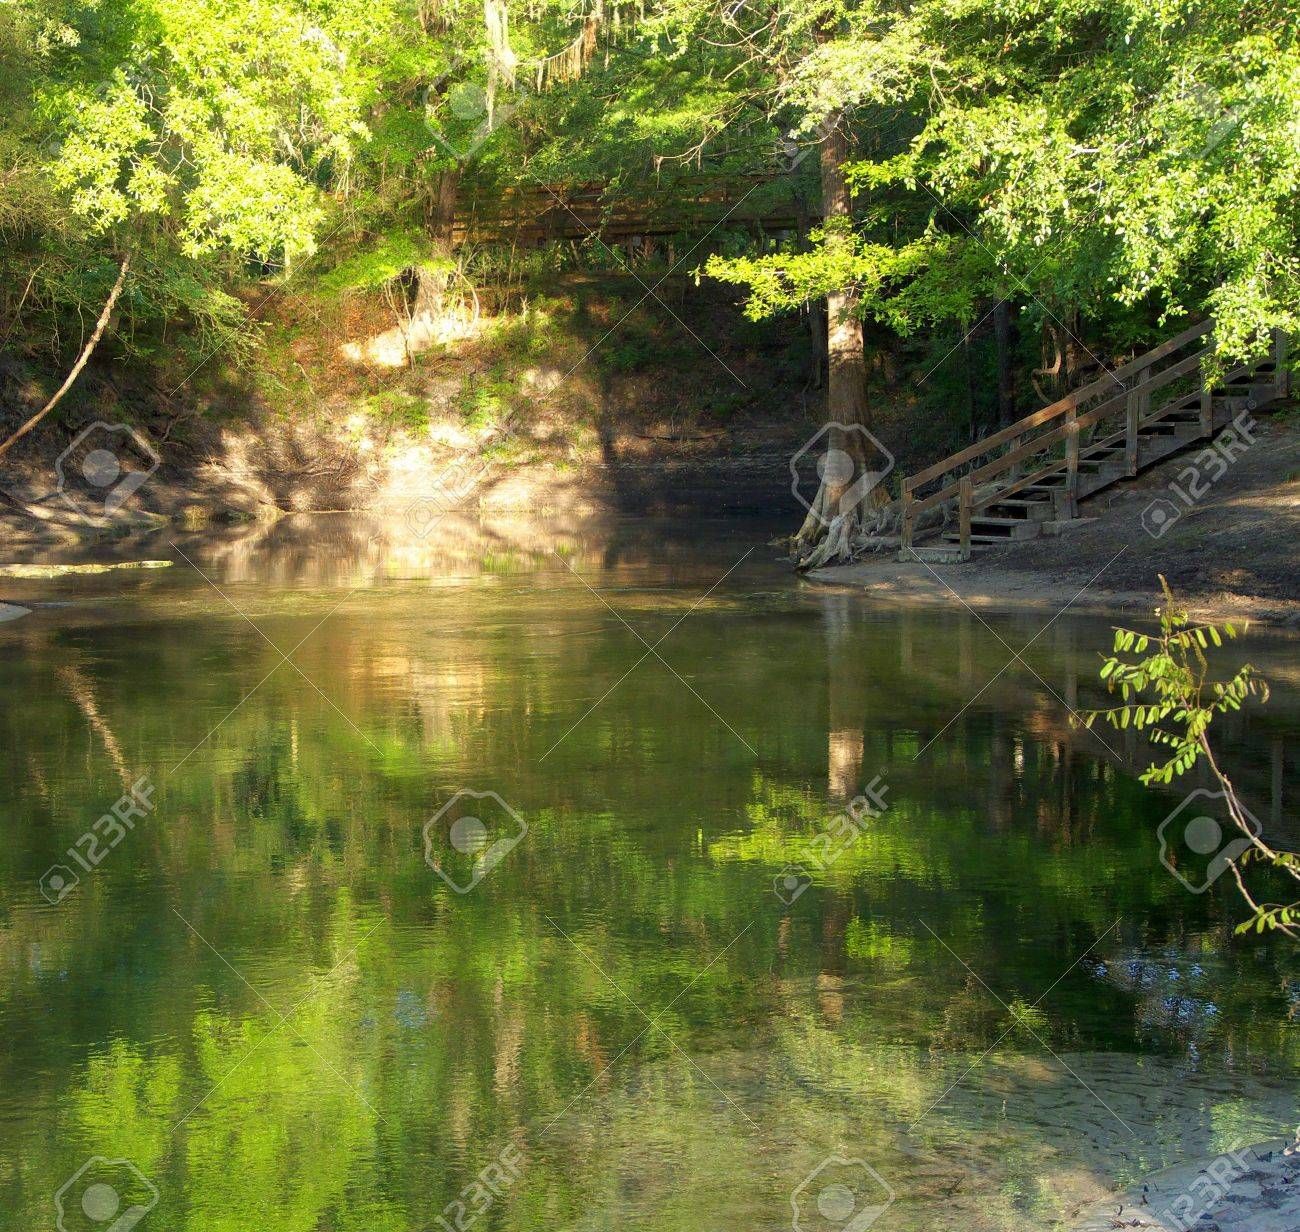 Sun illuminating the banks and trees at Lafayette Blue Springs State Park, Florida, with nice reflections in the beautiful water. Stock Photo - 7093032